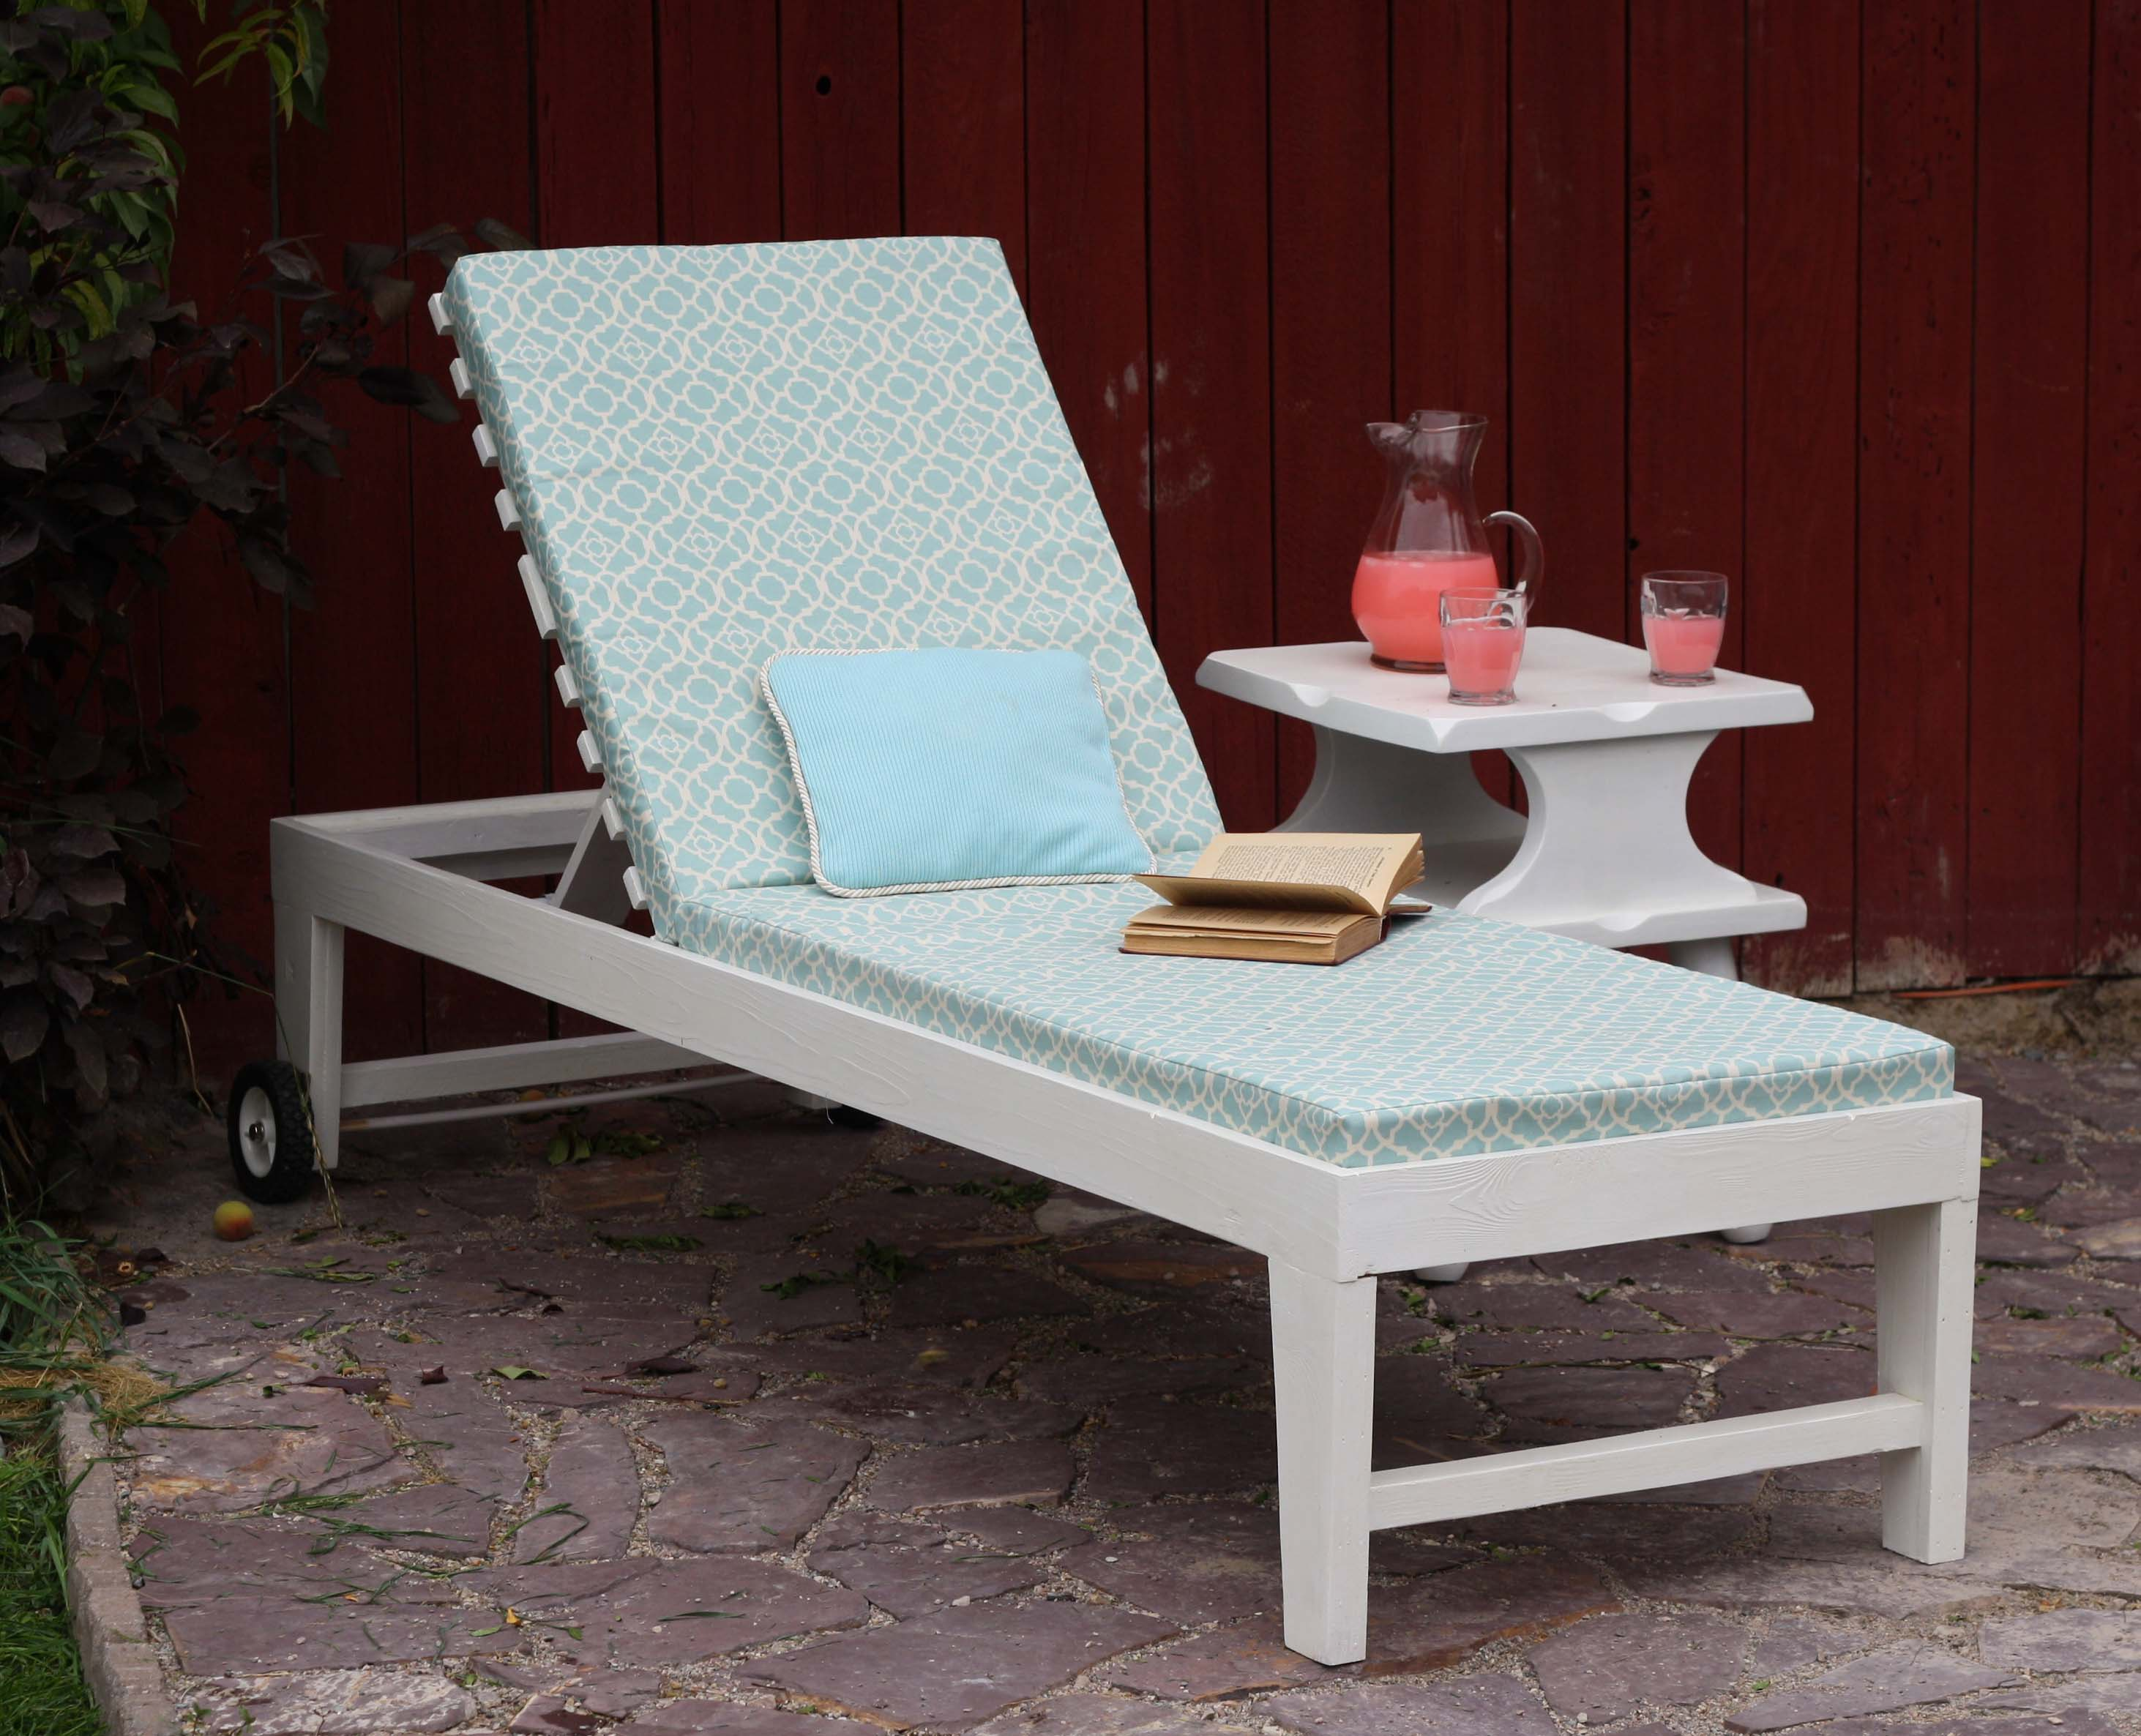 Ana white turquoise chaise lounger diy projects for Build chaise lounge